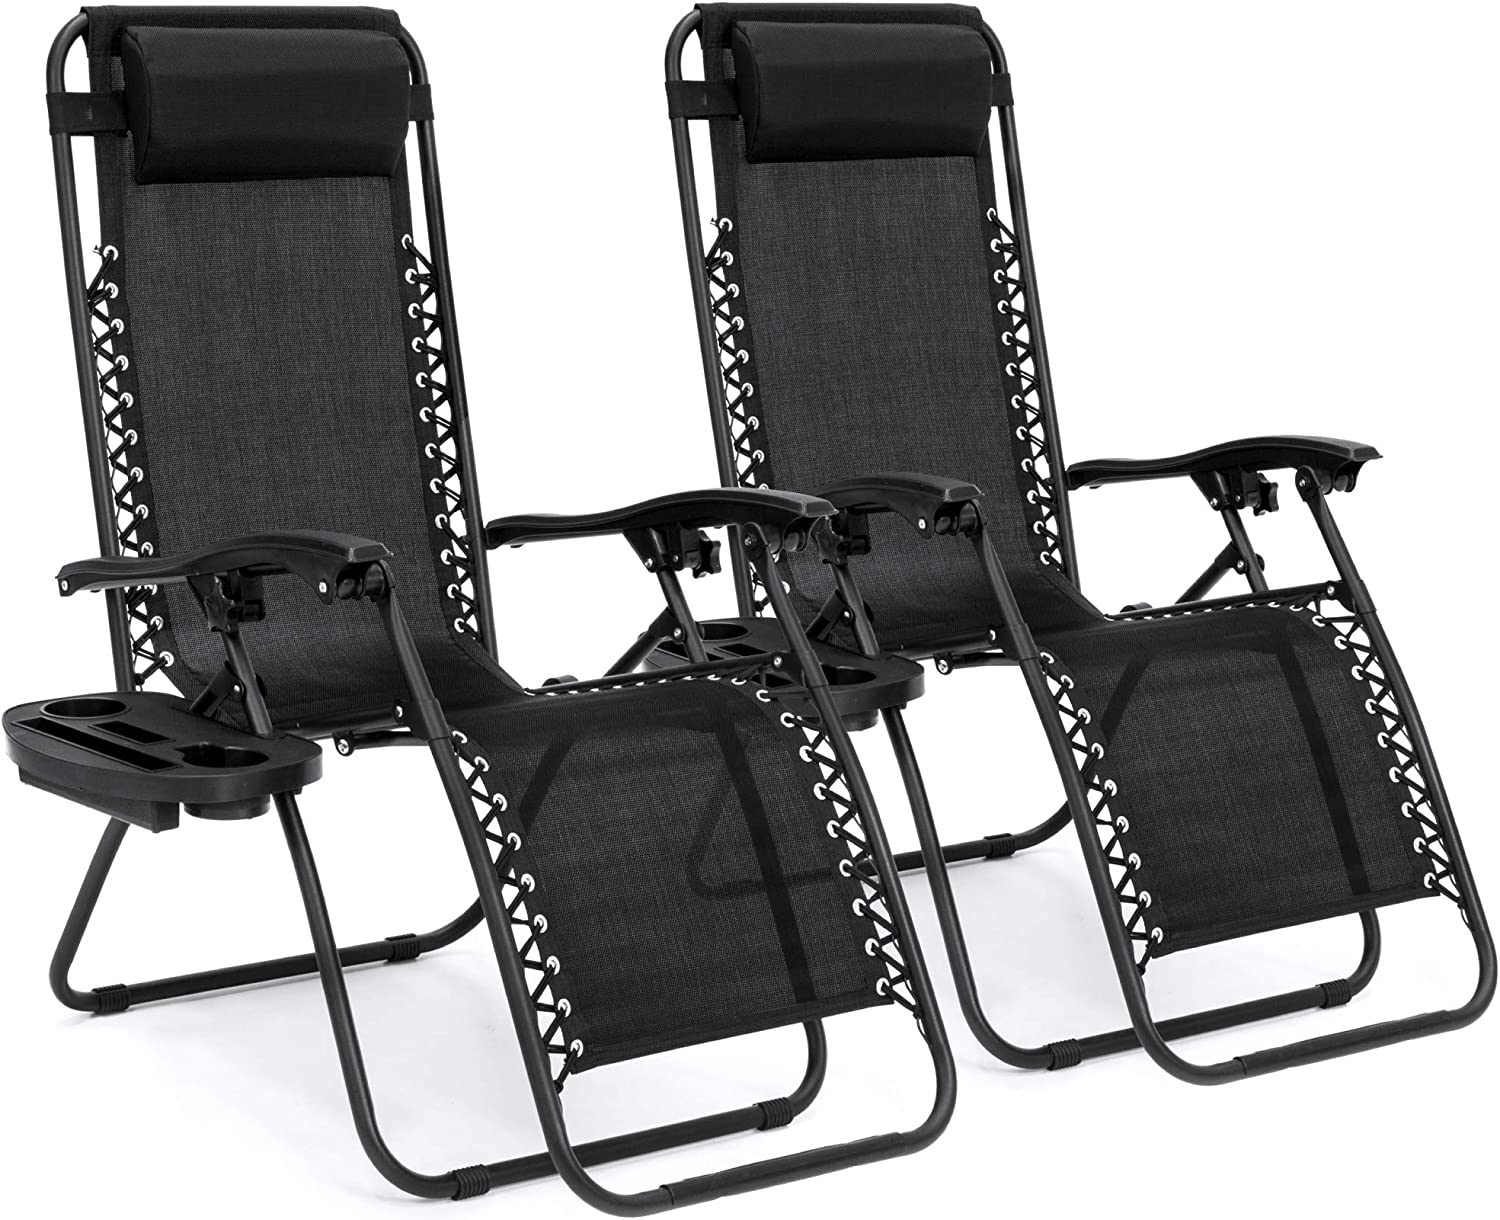 Best Choice Products Set of 2 Adjustable Steel Mesh Zero Gravity Lounge Chair Recliners w/Pillows and Cup Holder Trays, Black : Garden & Outdoor